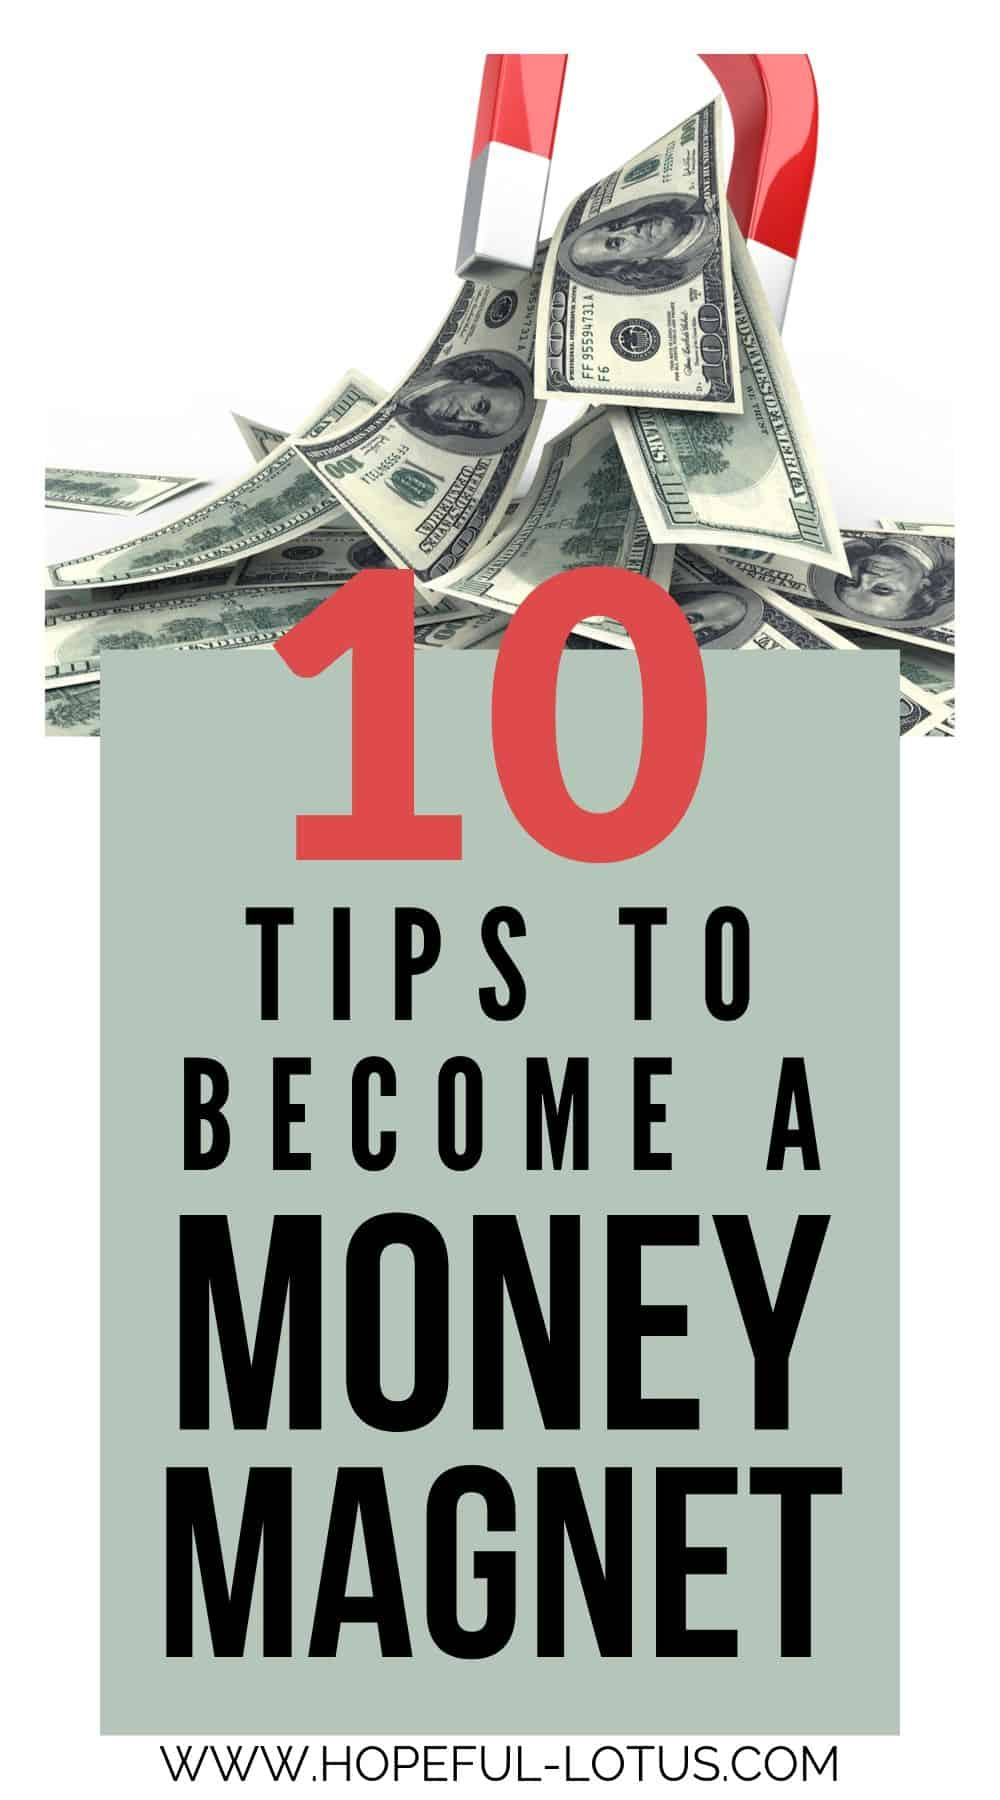 Looking to manifest wealth and abundance? Try these 10 tips to become a money magnet and manifest money using the magic of the universe!